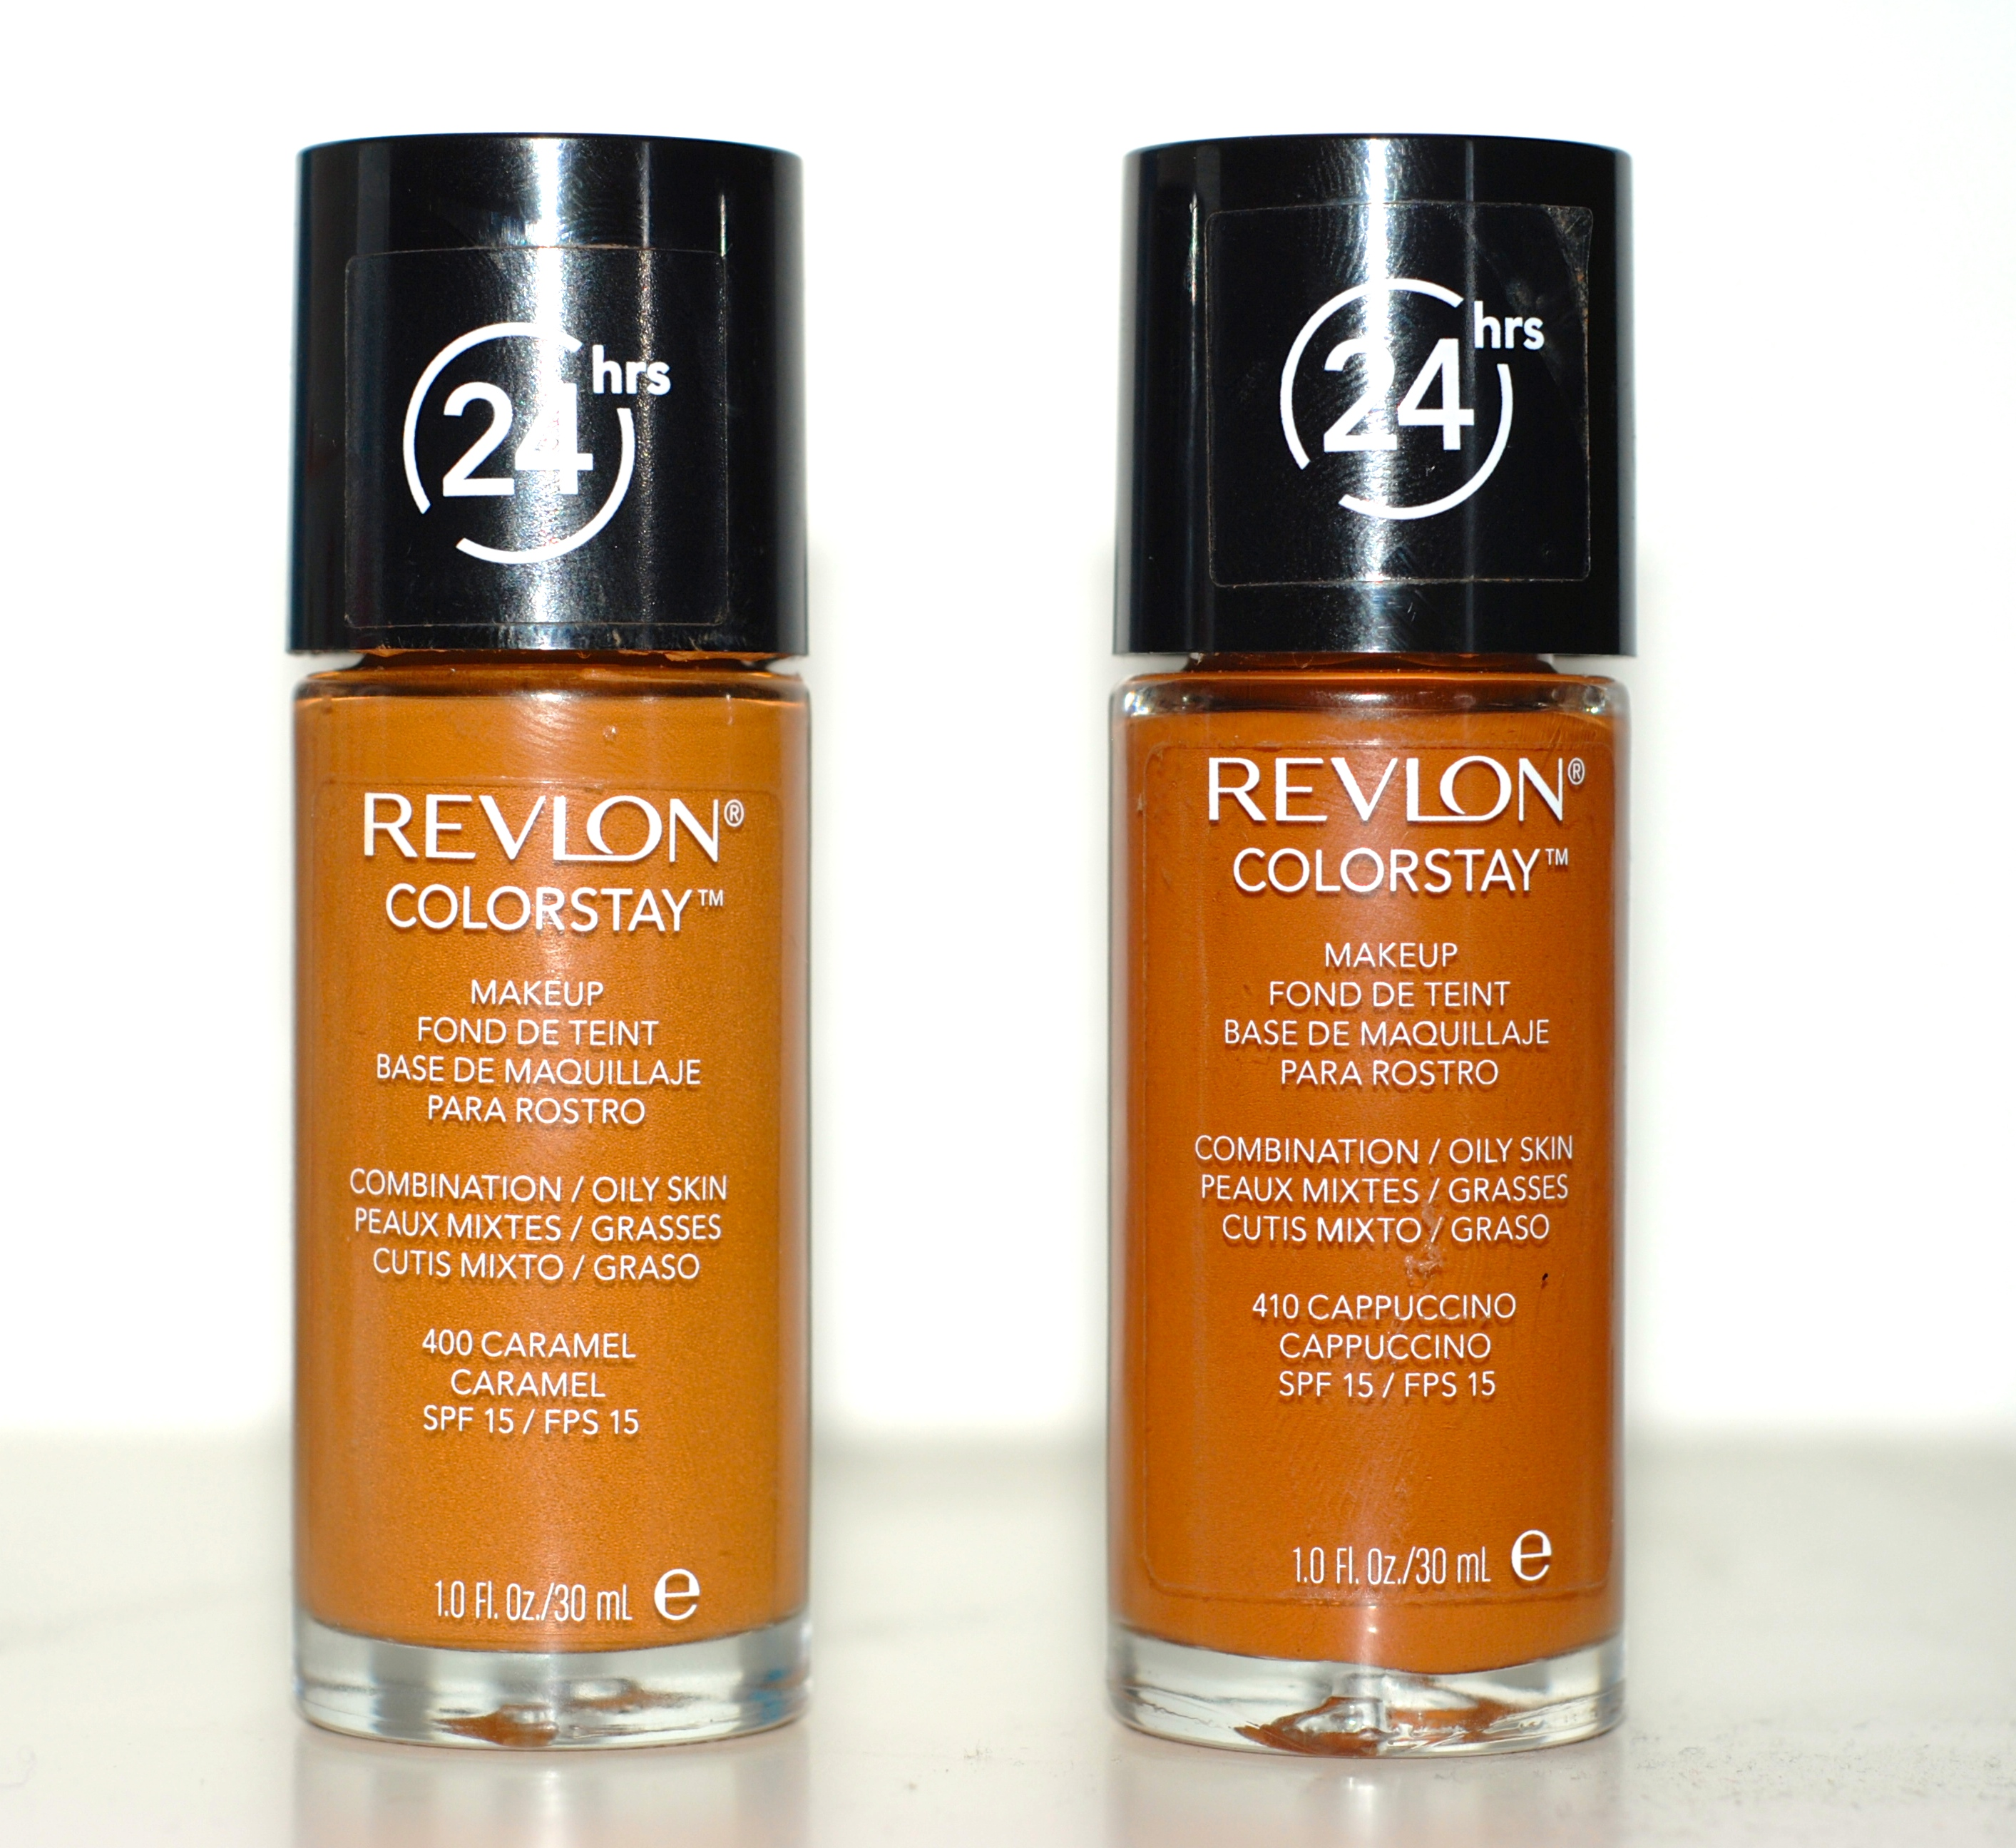 Revlon colorstay foundation | Angela Nx